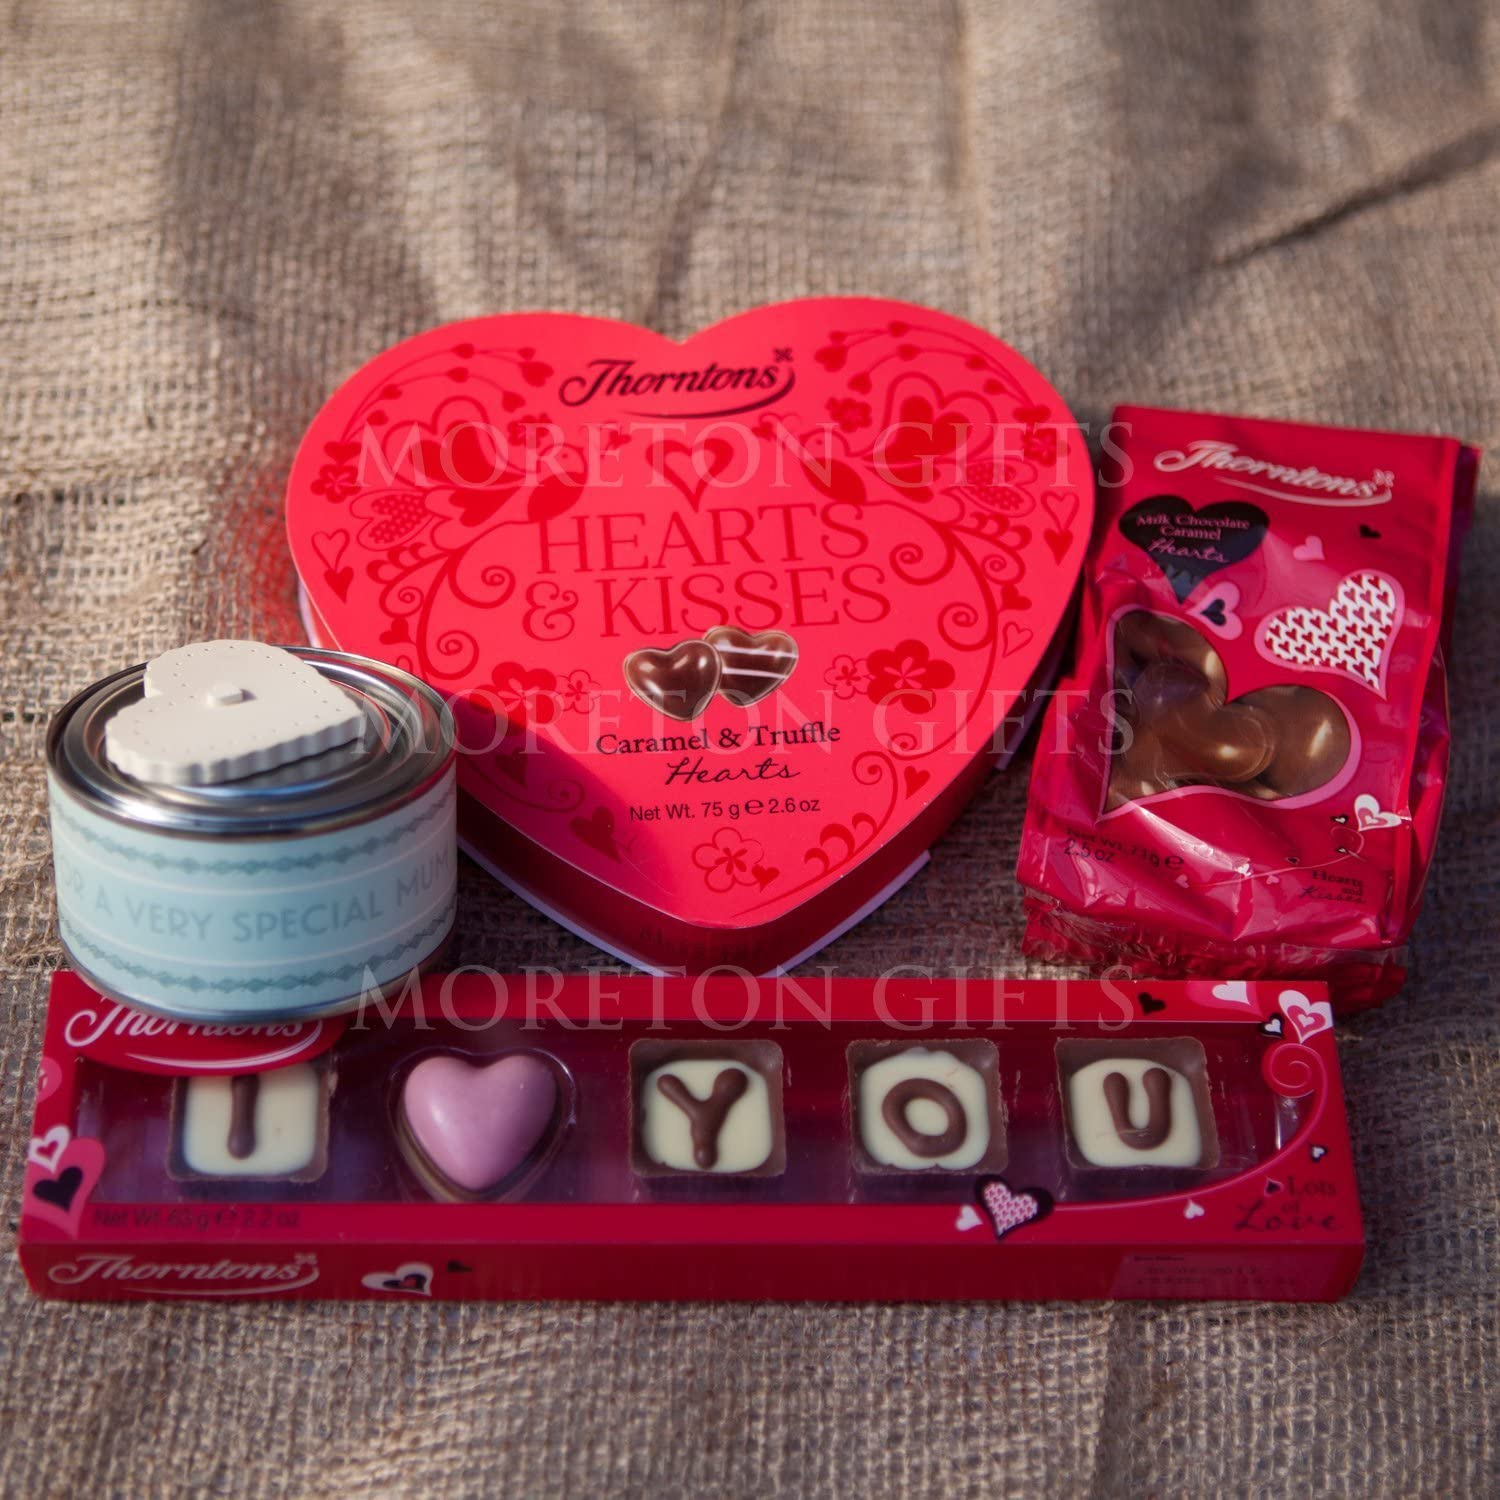 Thorntons Luxury Chocolate Valentines Love Box I You Hearts Kisses Lollypop Chocolates Treat Bags By Moreton Gifts Great Romantic Premium Gift Amazon Co Uk Grocery